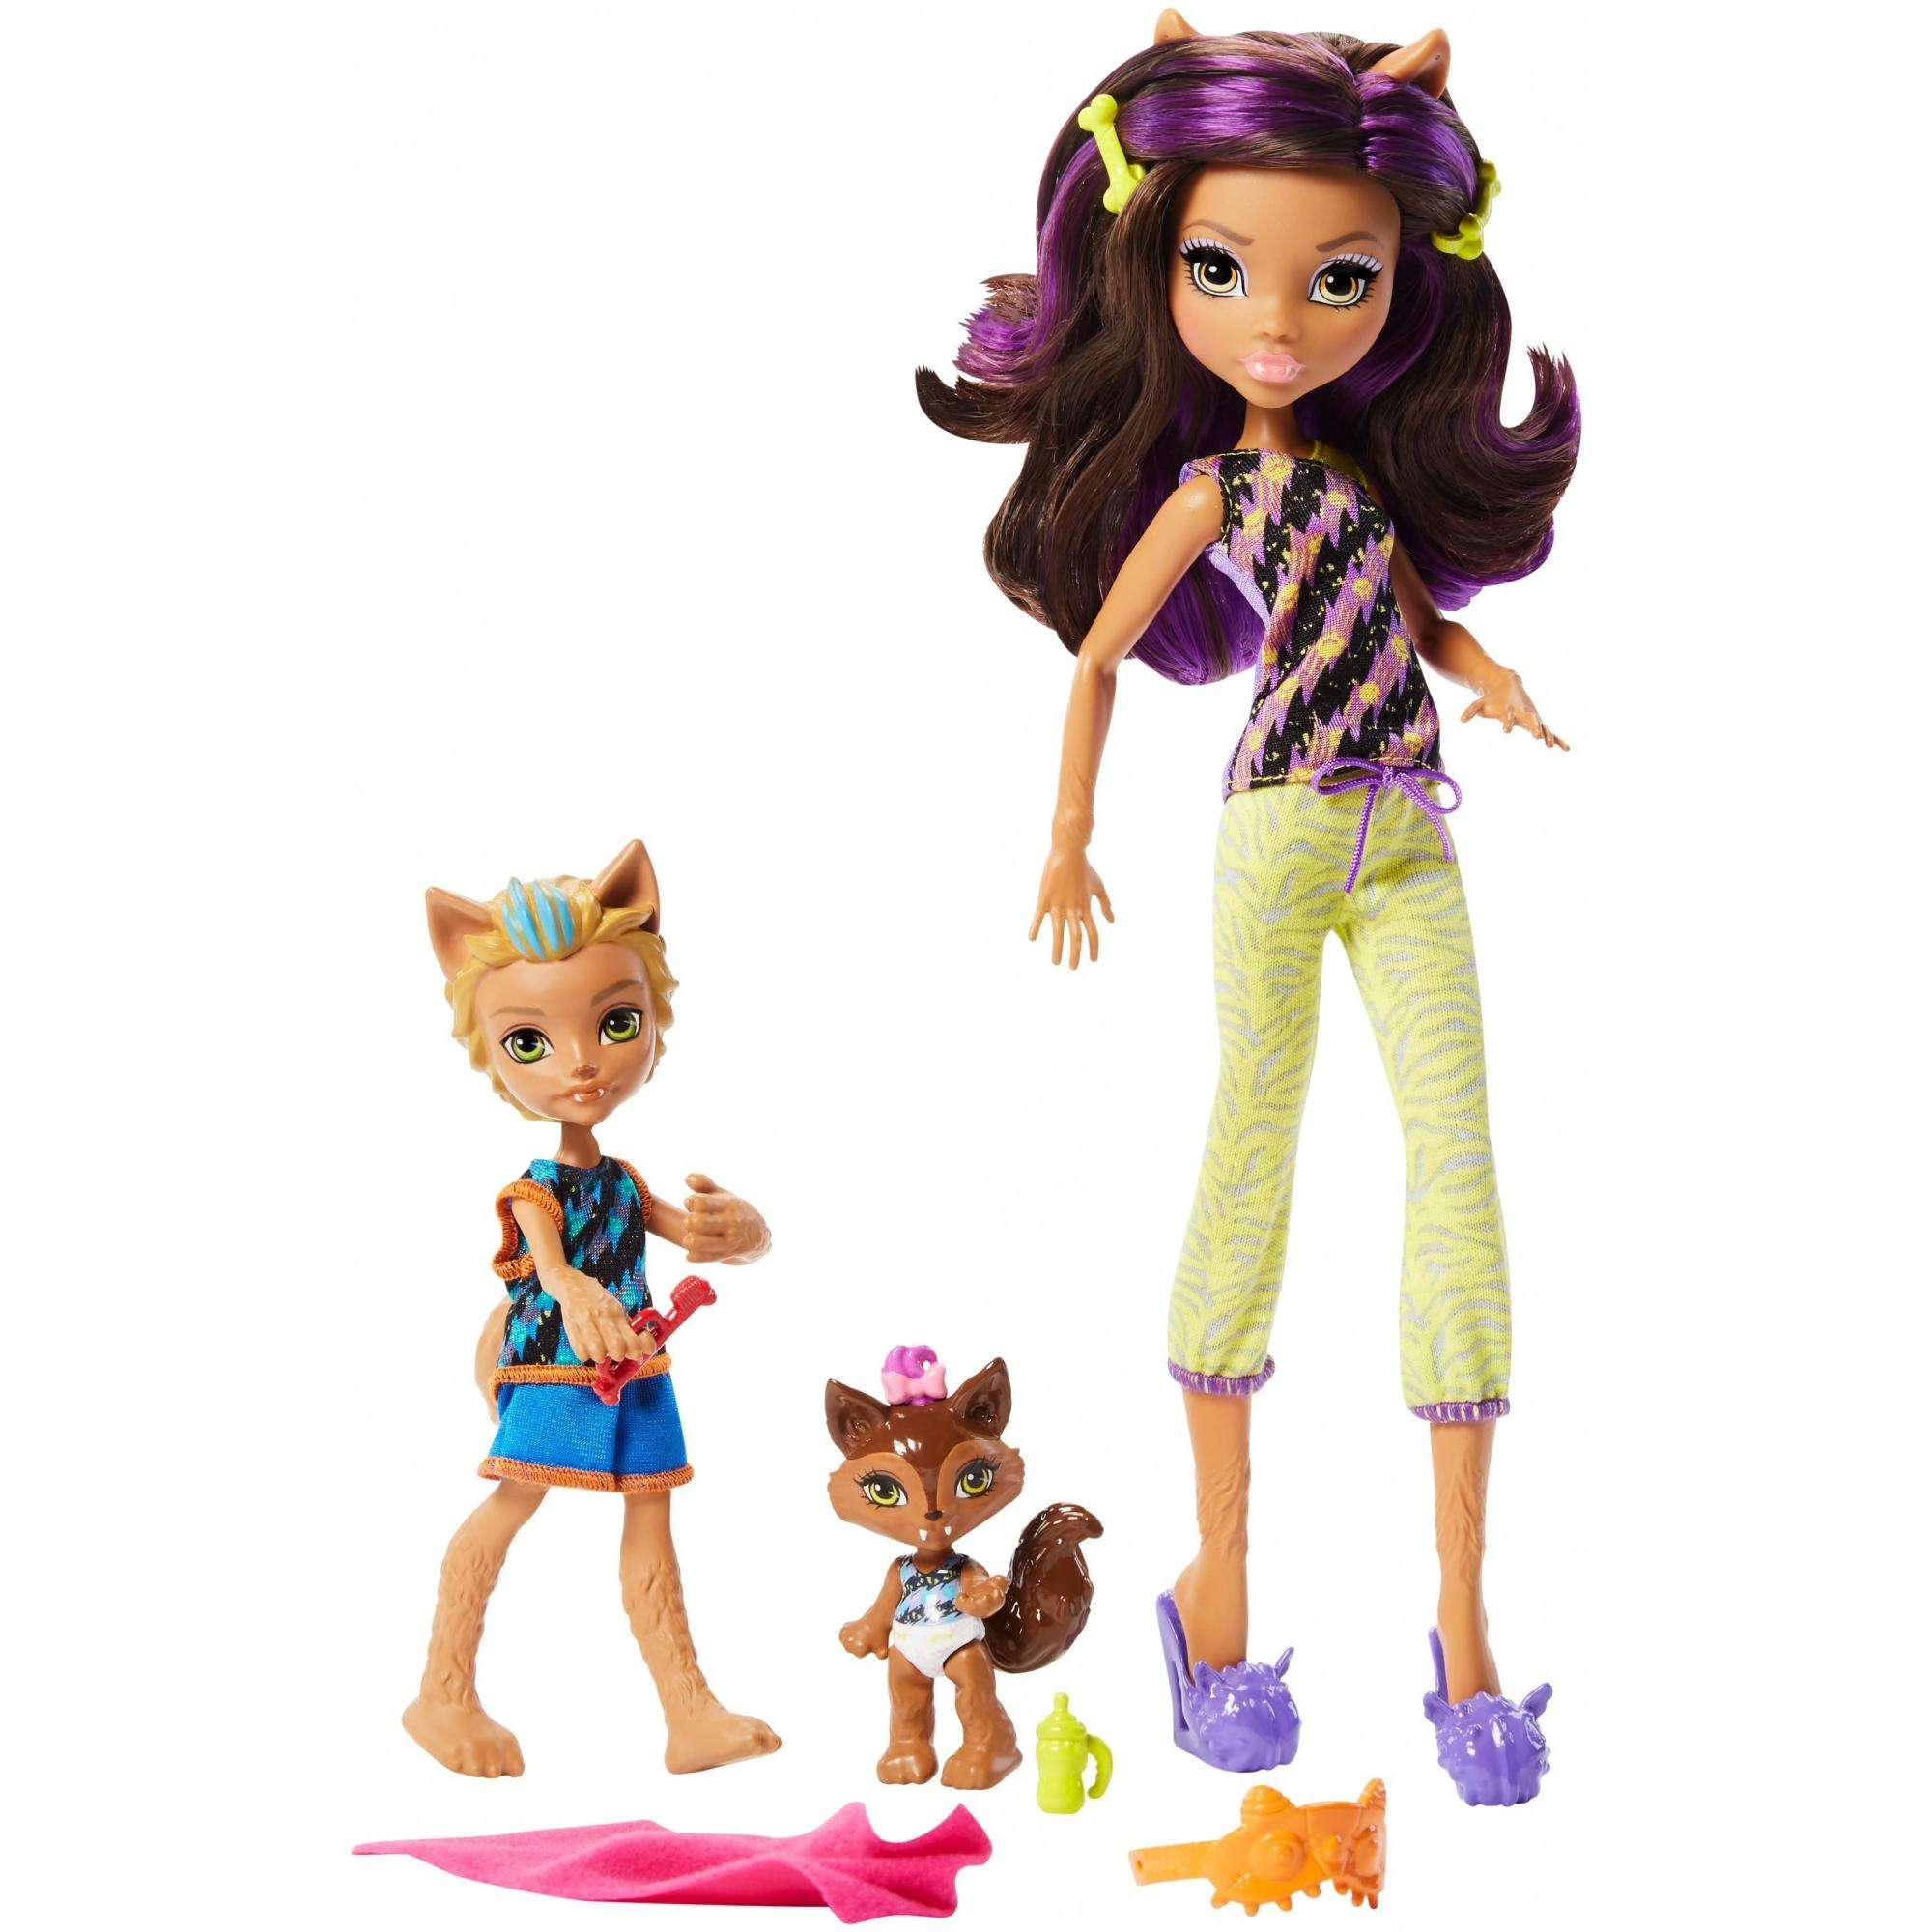 Monster High Monster Family of Clawdeen Wolf 2-pack Dolls by Mattel